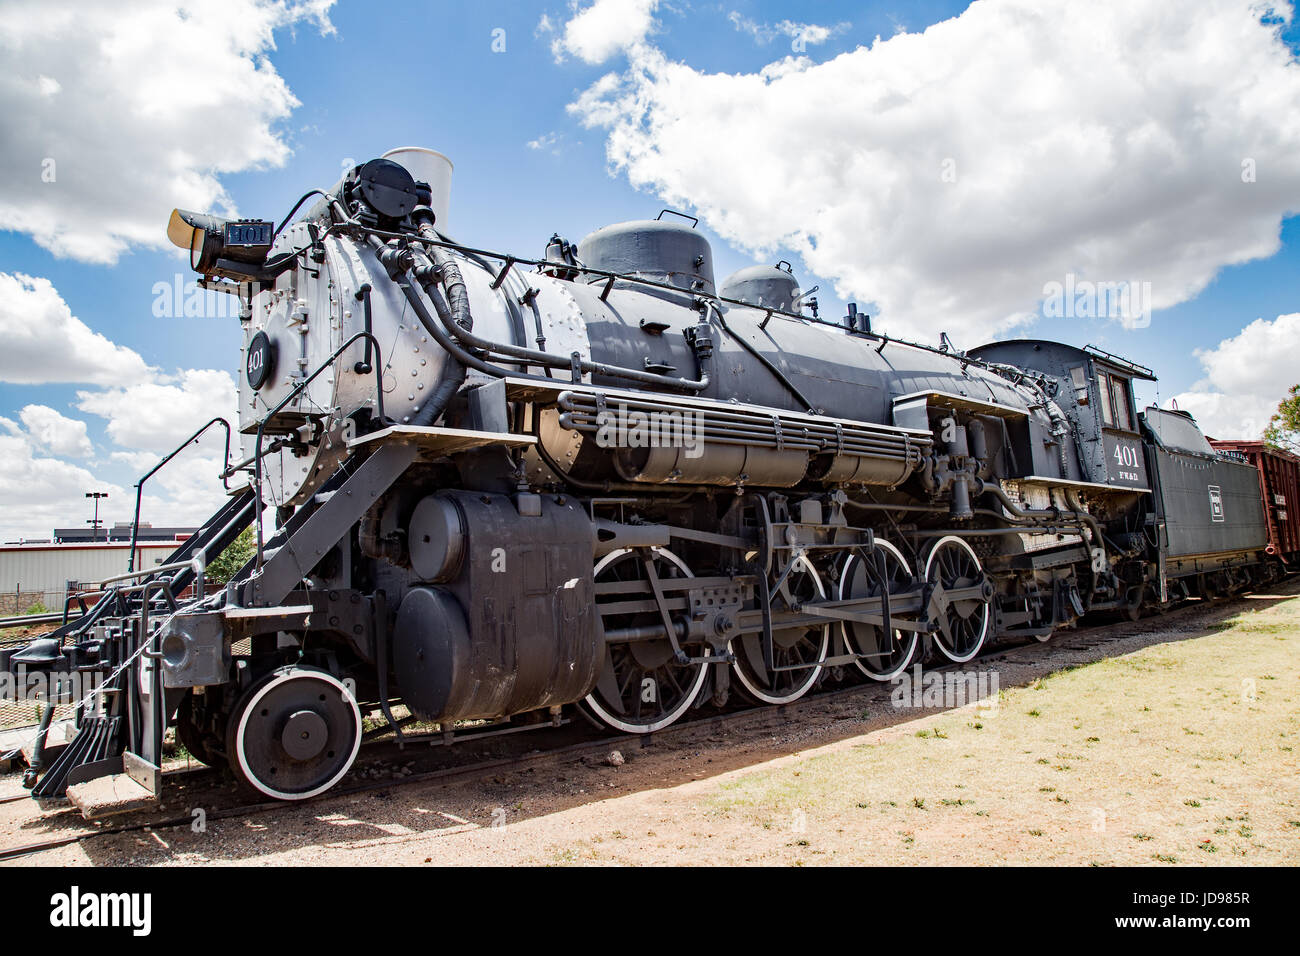 Baldwin locomotive at the National Ranching Heritage Center, Lubbock, Texas Stock Photo